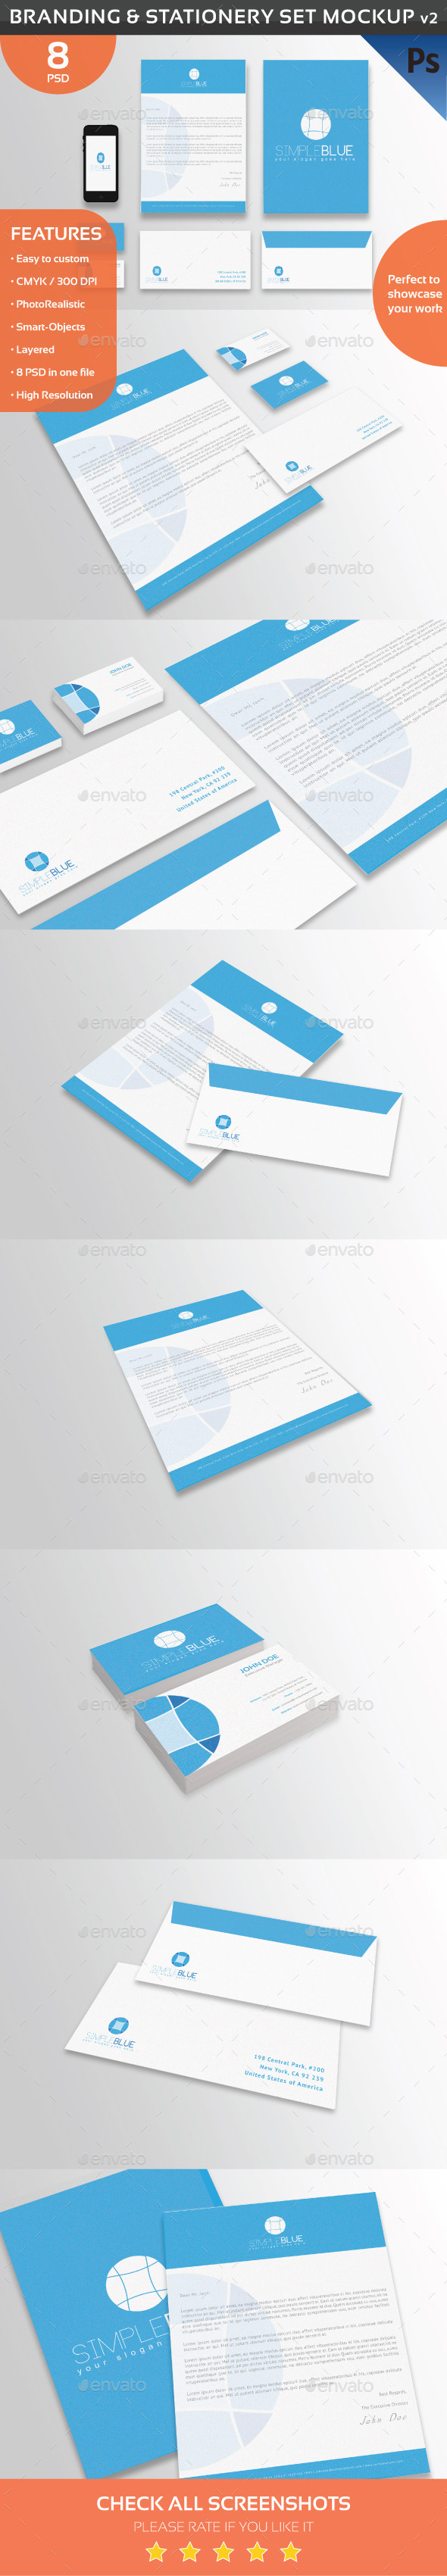 Branding & Stationery Set Mockup v2